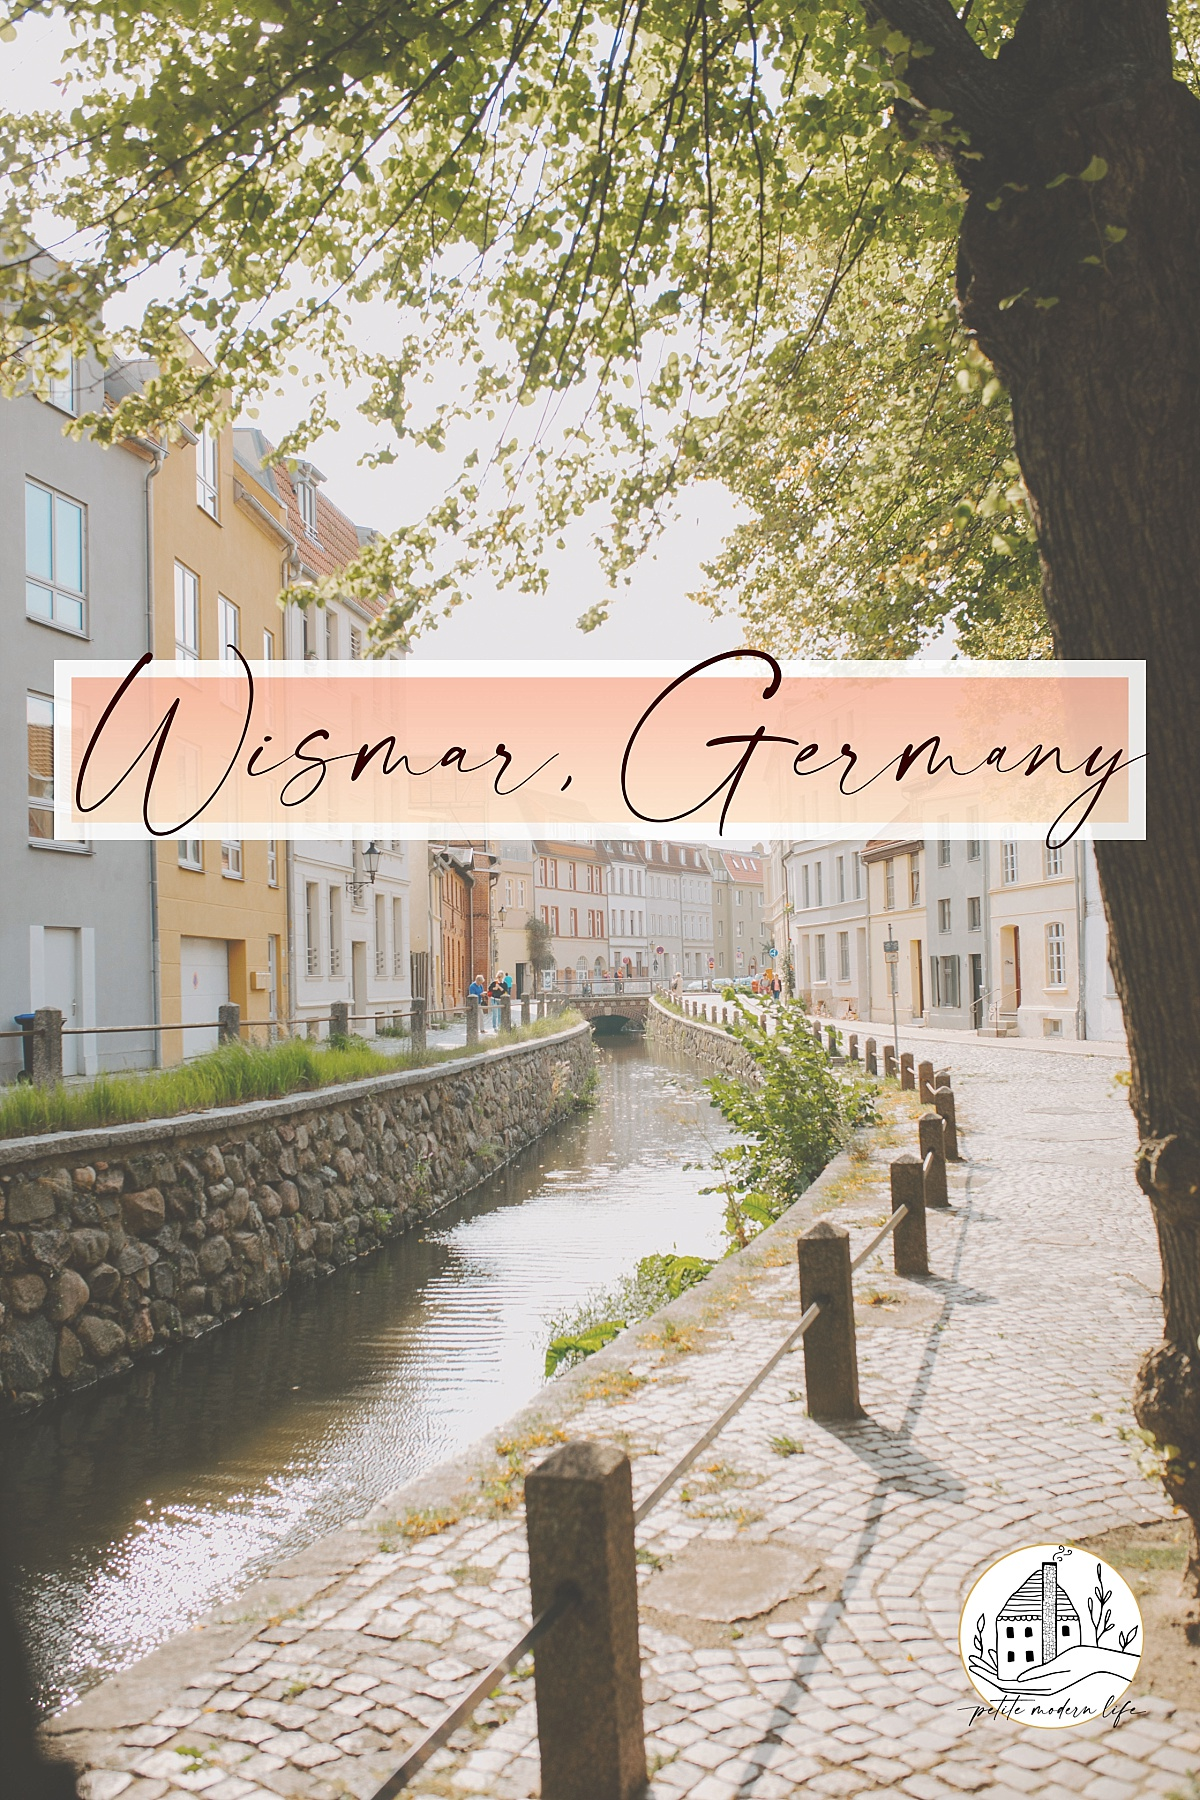 Where to go in Wismar, Germany